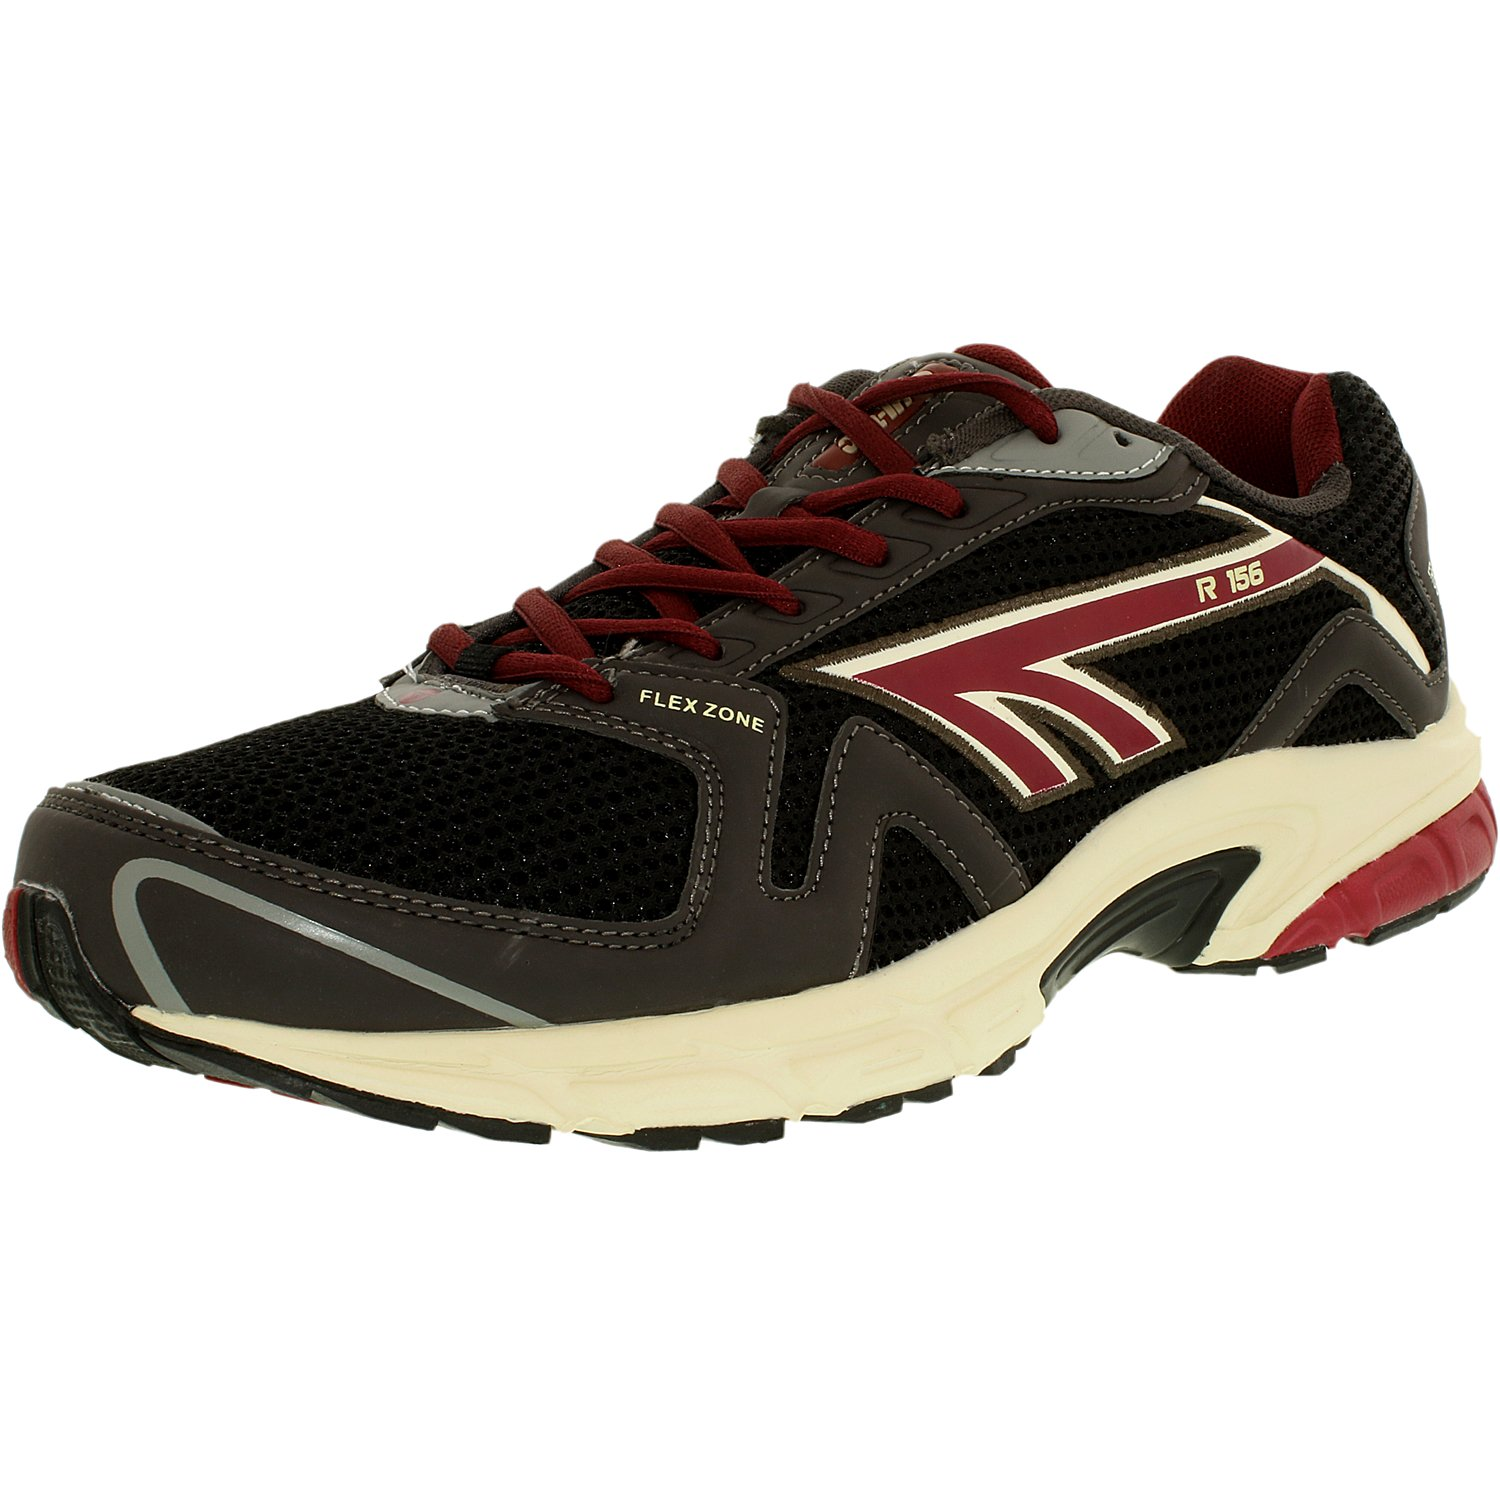 Hi-Tec Men's R156 M Charcoal Black Red Ankle-High Running Shoe 11M by Hi-Tec